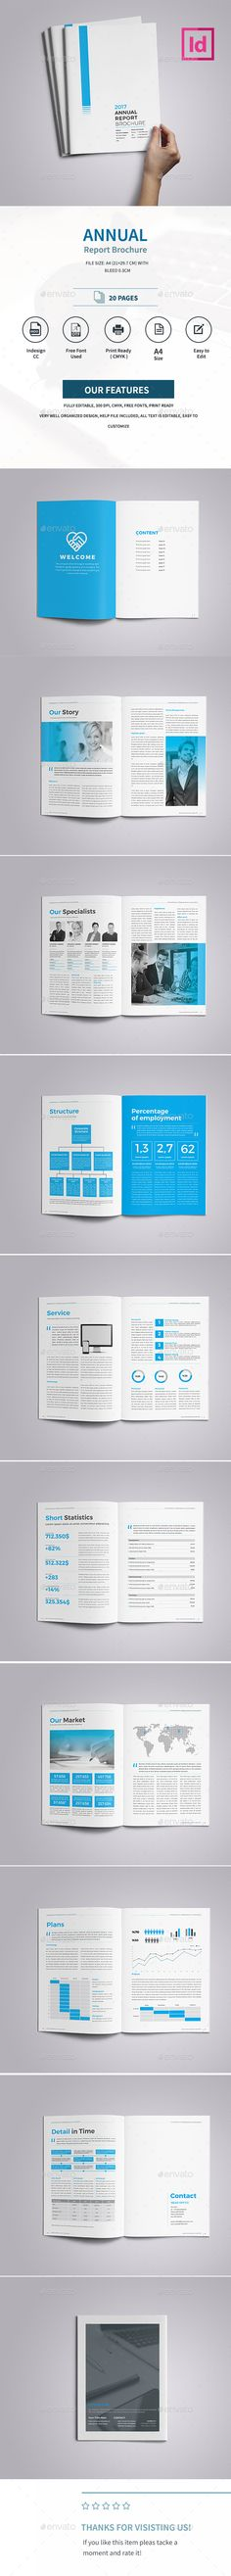 Buy Corporate Annual Report Brochure 2017 by GraphicGrape on GraphicRiver. Corporate Annual Report Brochure 2017 Easy to edit, you can change blue accent color throughout the whole document at. Company Brochure, Corporate Brochure, Brochure Design, Magazine Examples, Nonprofit Annual Report, Report Design Template, Annual Report Layout, Indesign Brochure Templates, Print Templates